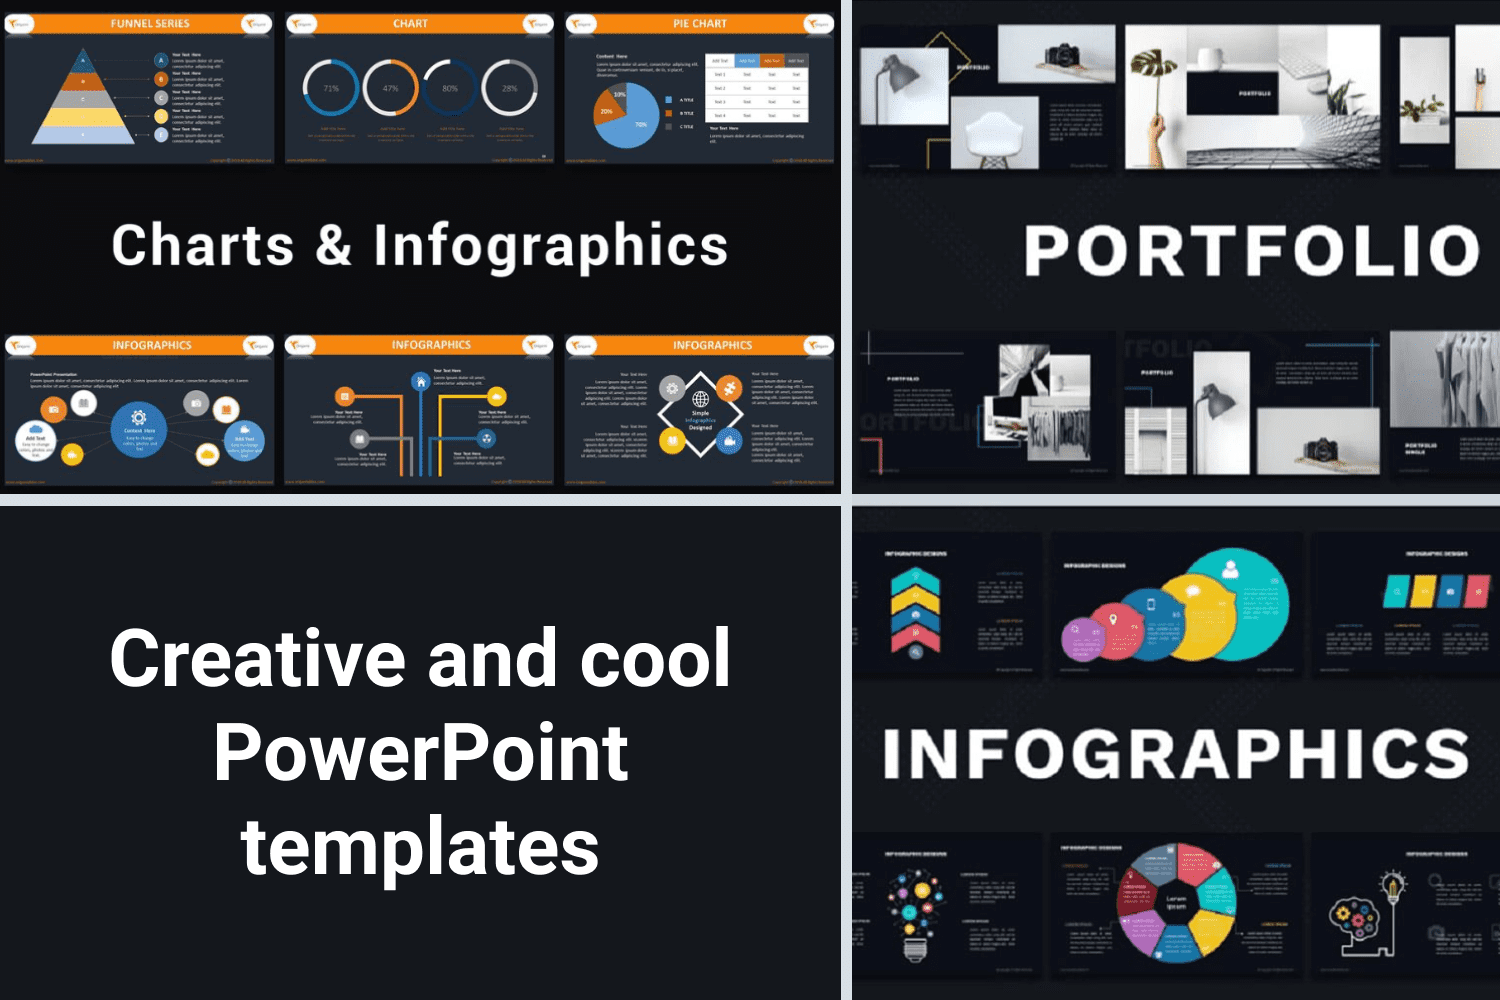 Stylish dark template with colored infographics looks impressive and memorable.